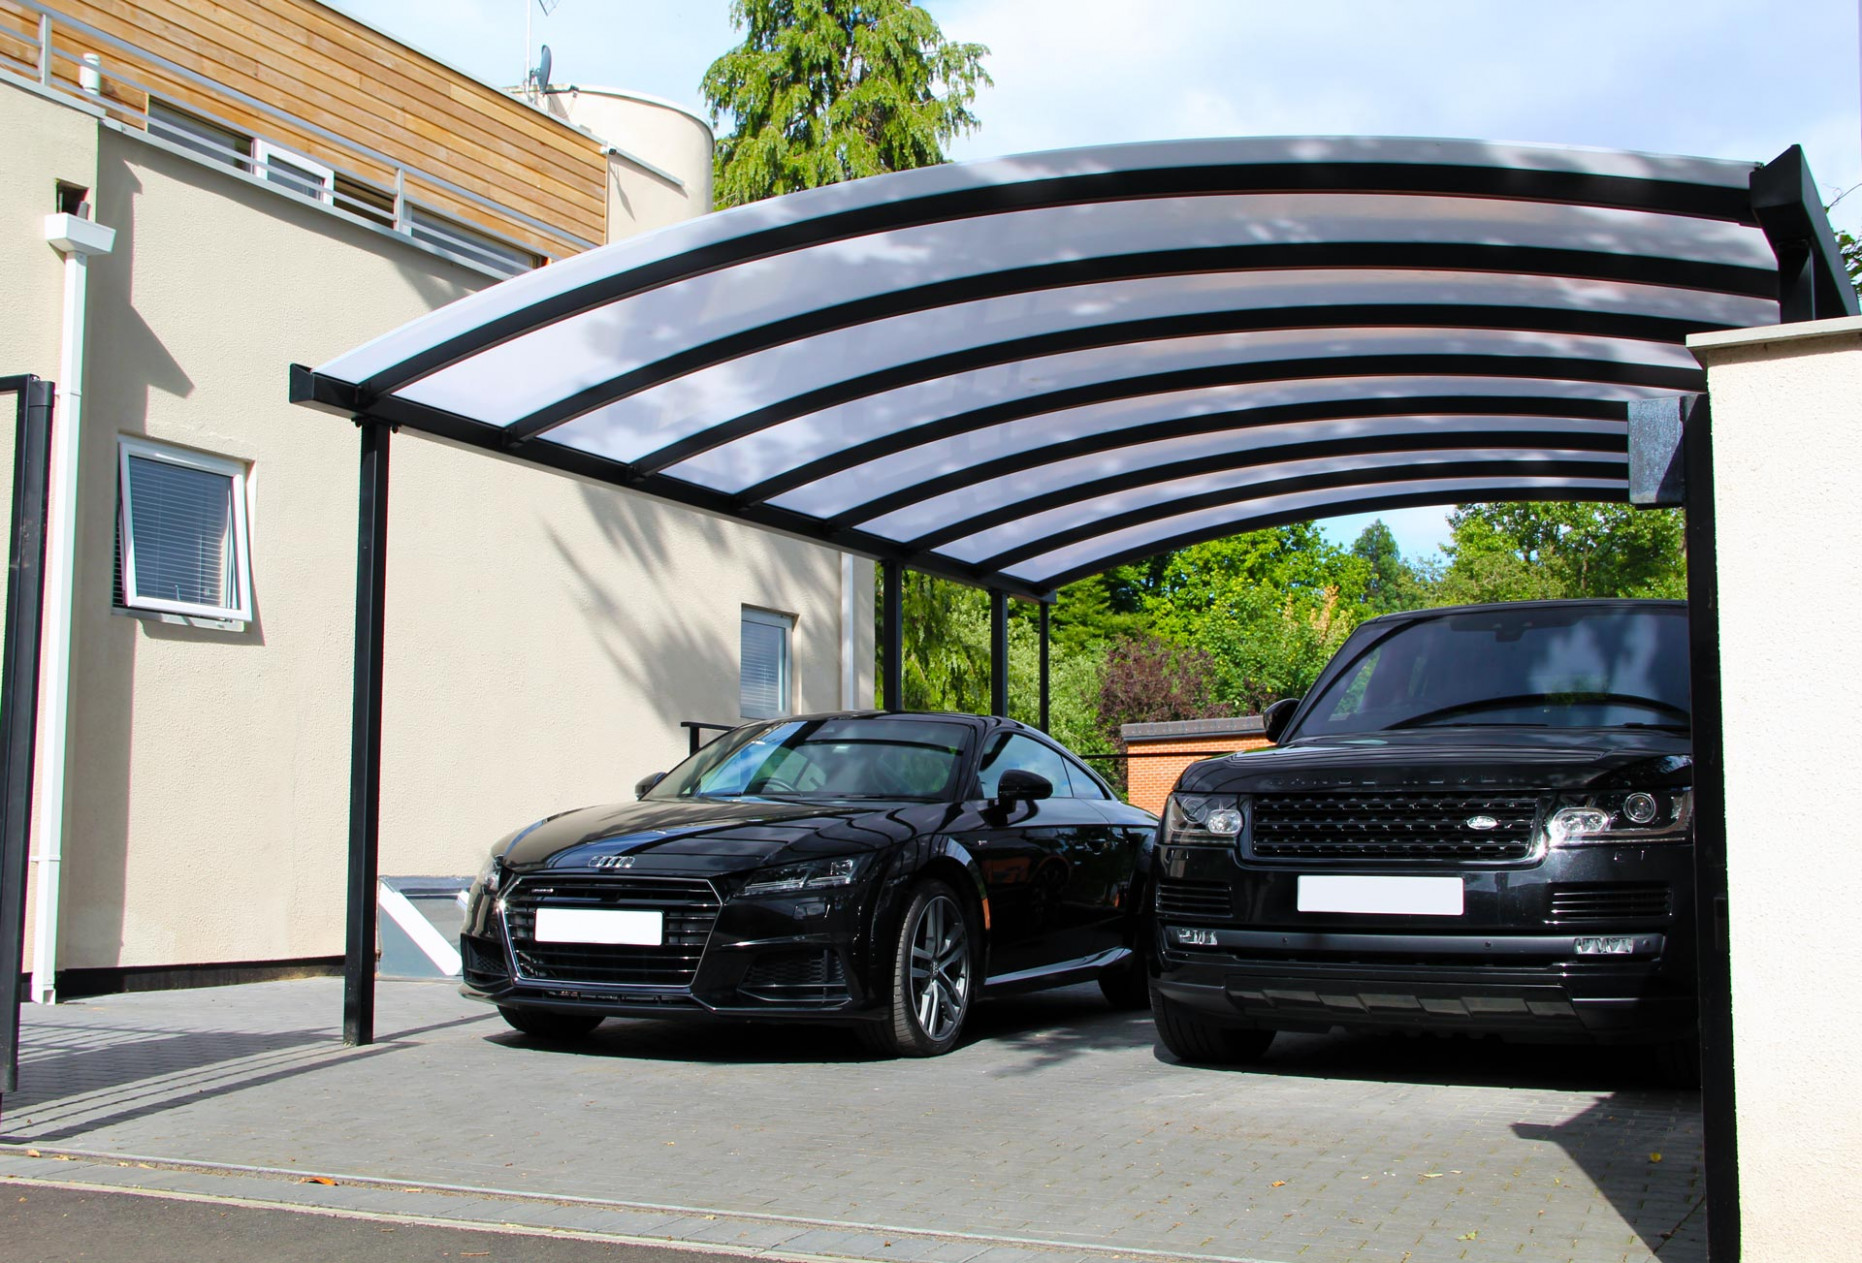 Car Port Canopy For Cars | Kappion Carports & Canopies Canopy And Carports